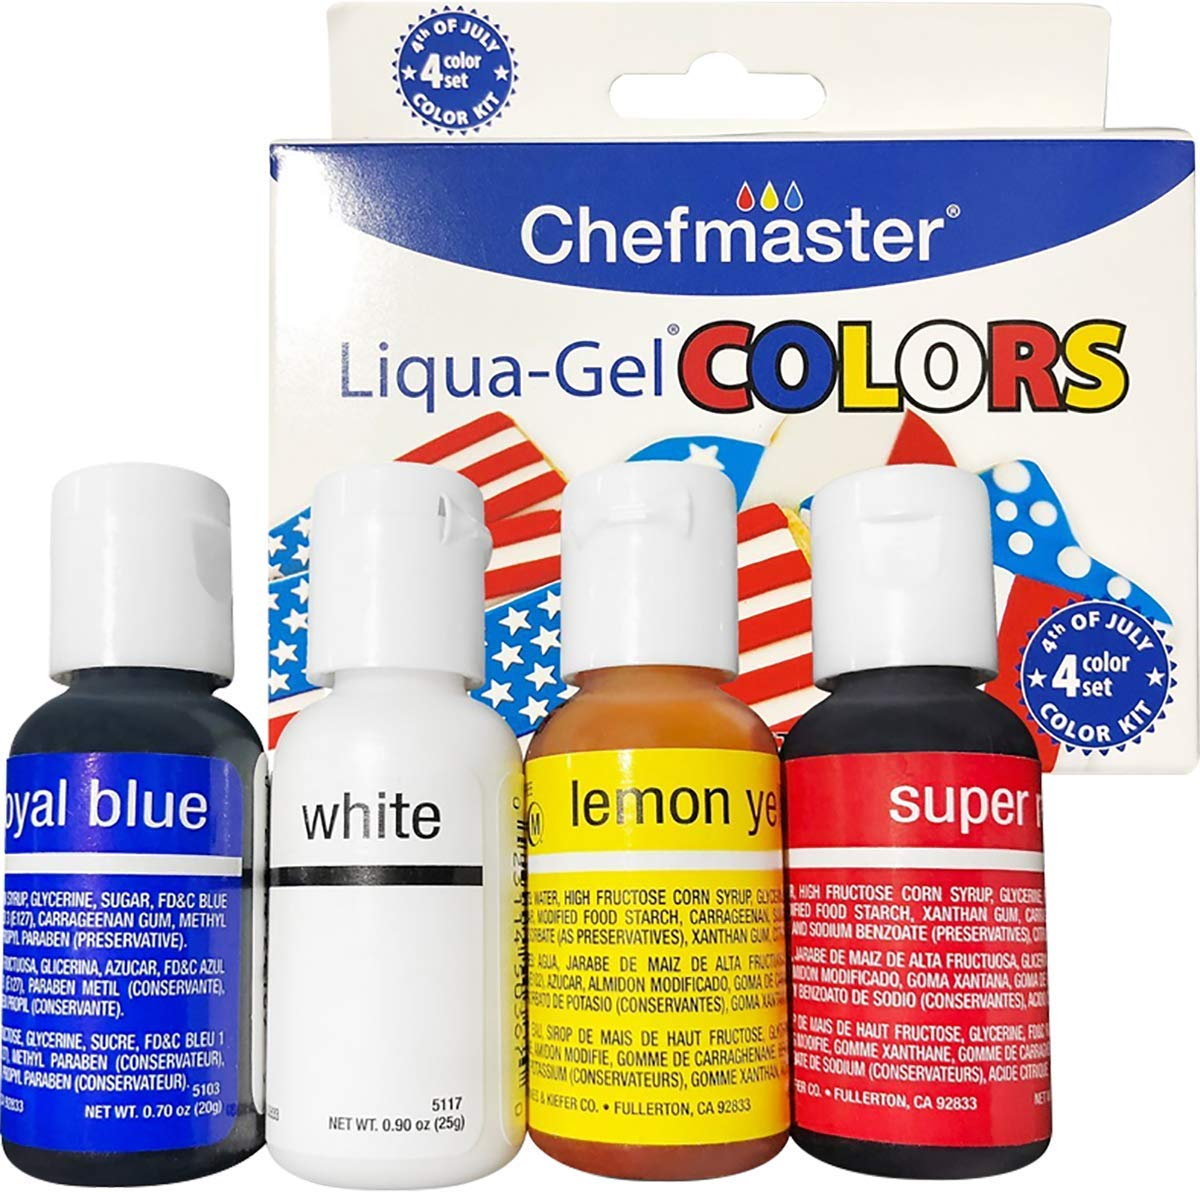 Chefmaster: 4th of July Liqua-Gel Food Color Kit - 4-Pack - 2.8oz bottles - Vibrant Patriotic Colors, Easy-To-Blend Formula, Fade-Resistant - For Cake Decorating, Cookie Decorating, Drinks and More